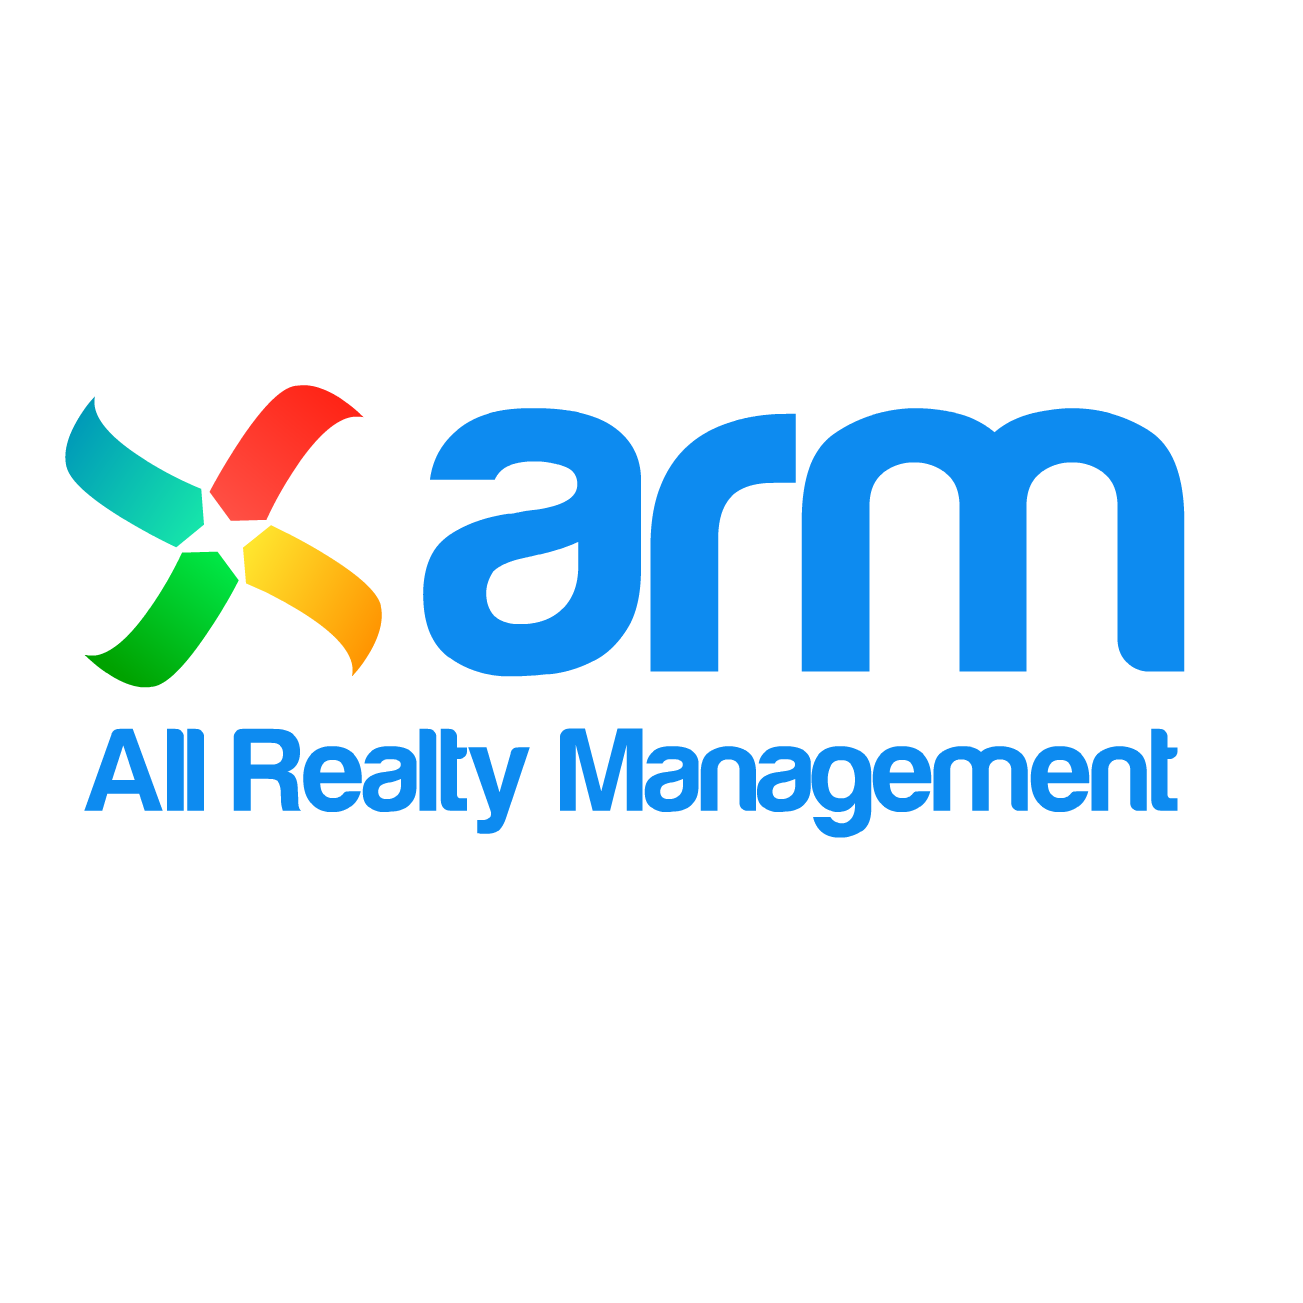 Property Management Company in FL Miami 33166 All Realty Management, LLC 8600 NW S River Drive Suite 240  (786)298-7240